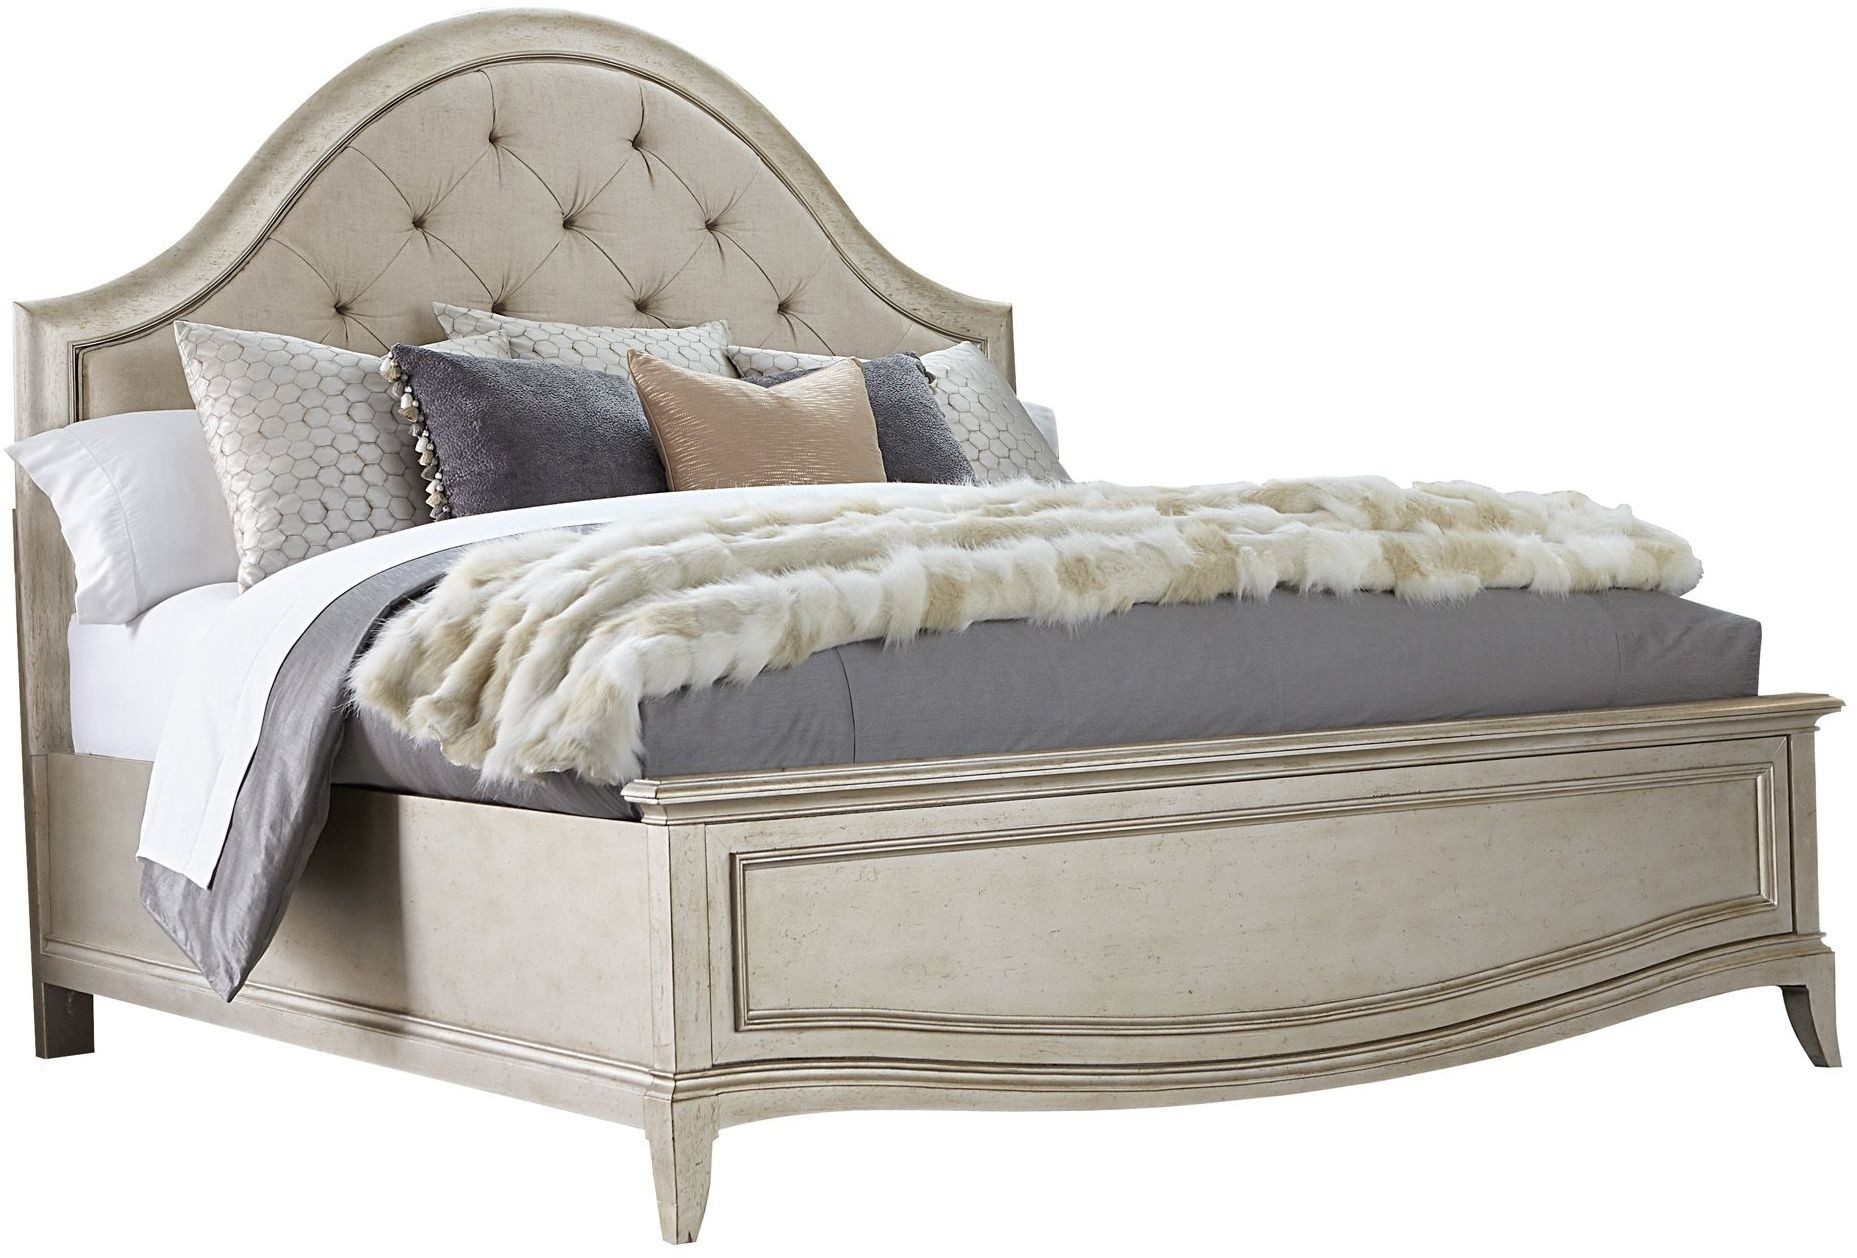 Starlite silver king upholstered panel bed from art for Panel beds for sale